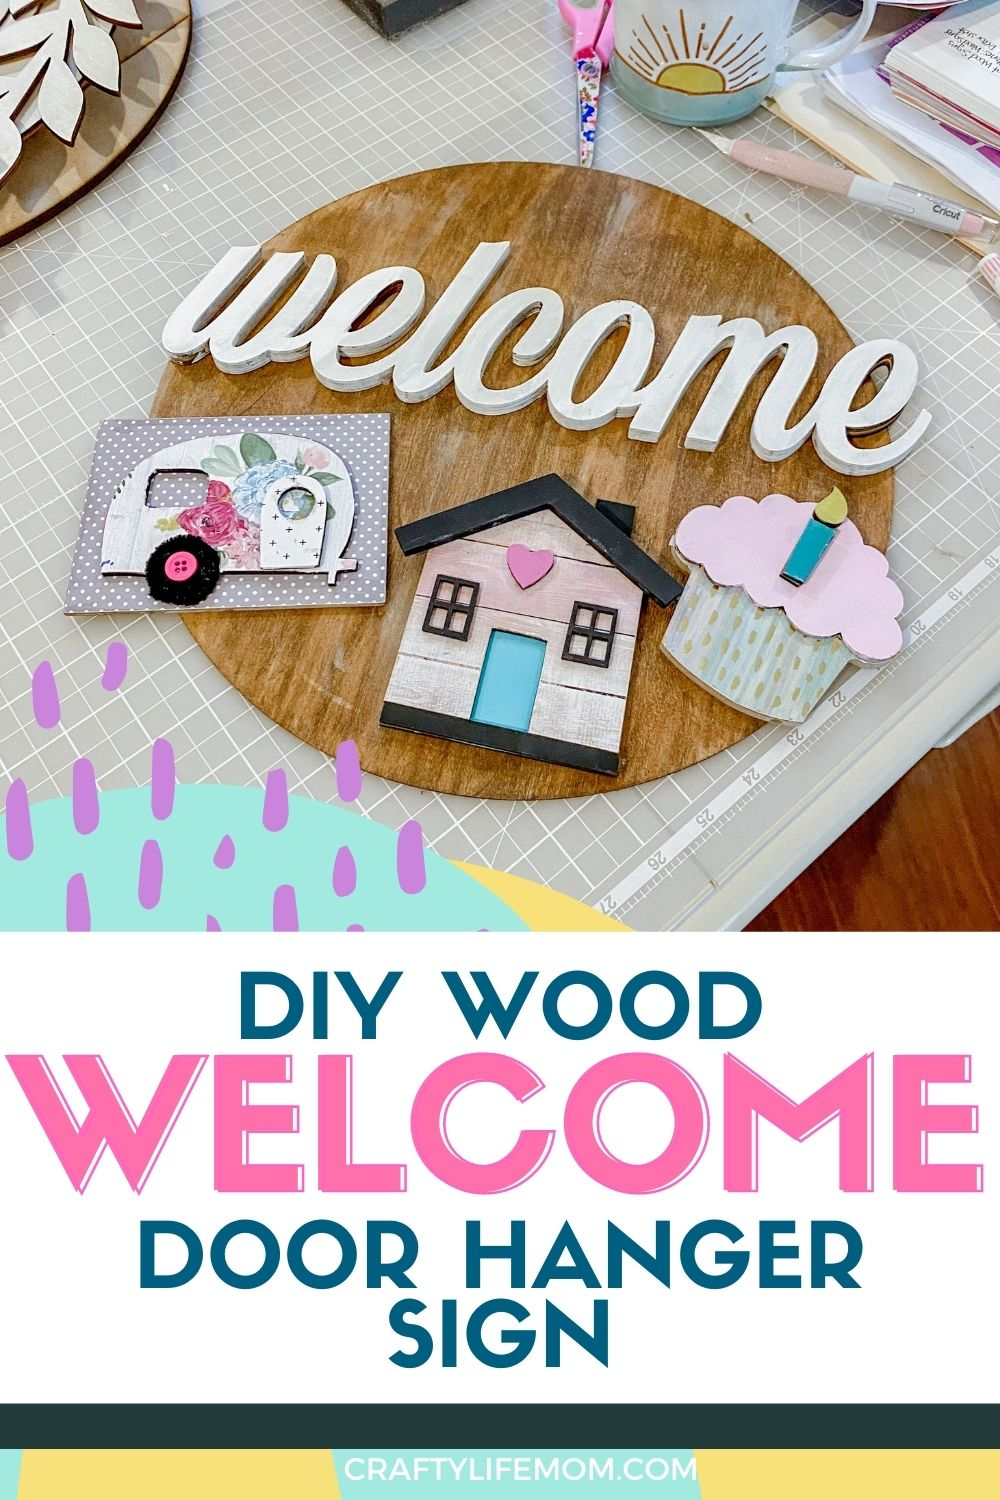 Learn how to create your own DIY Wood Welcome Sign using laser-cut wood pieces that can be interchangeable from local craft stores. No laser cutting machine is required for this project, plus I show you how to create something perfect for your style and your home.